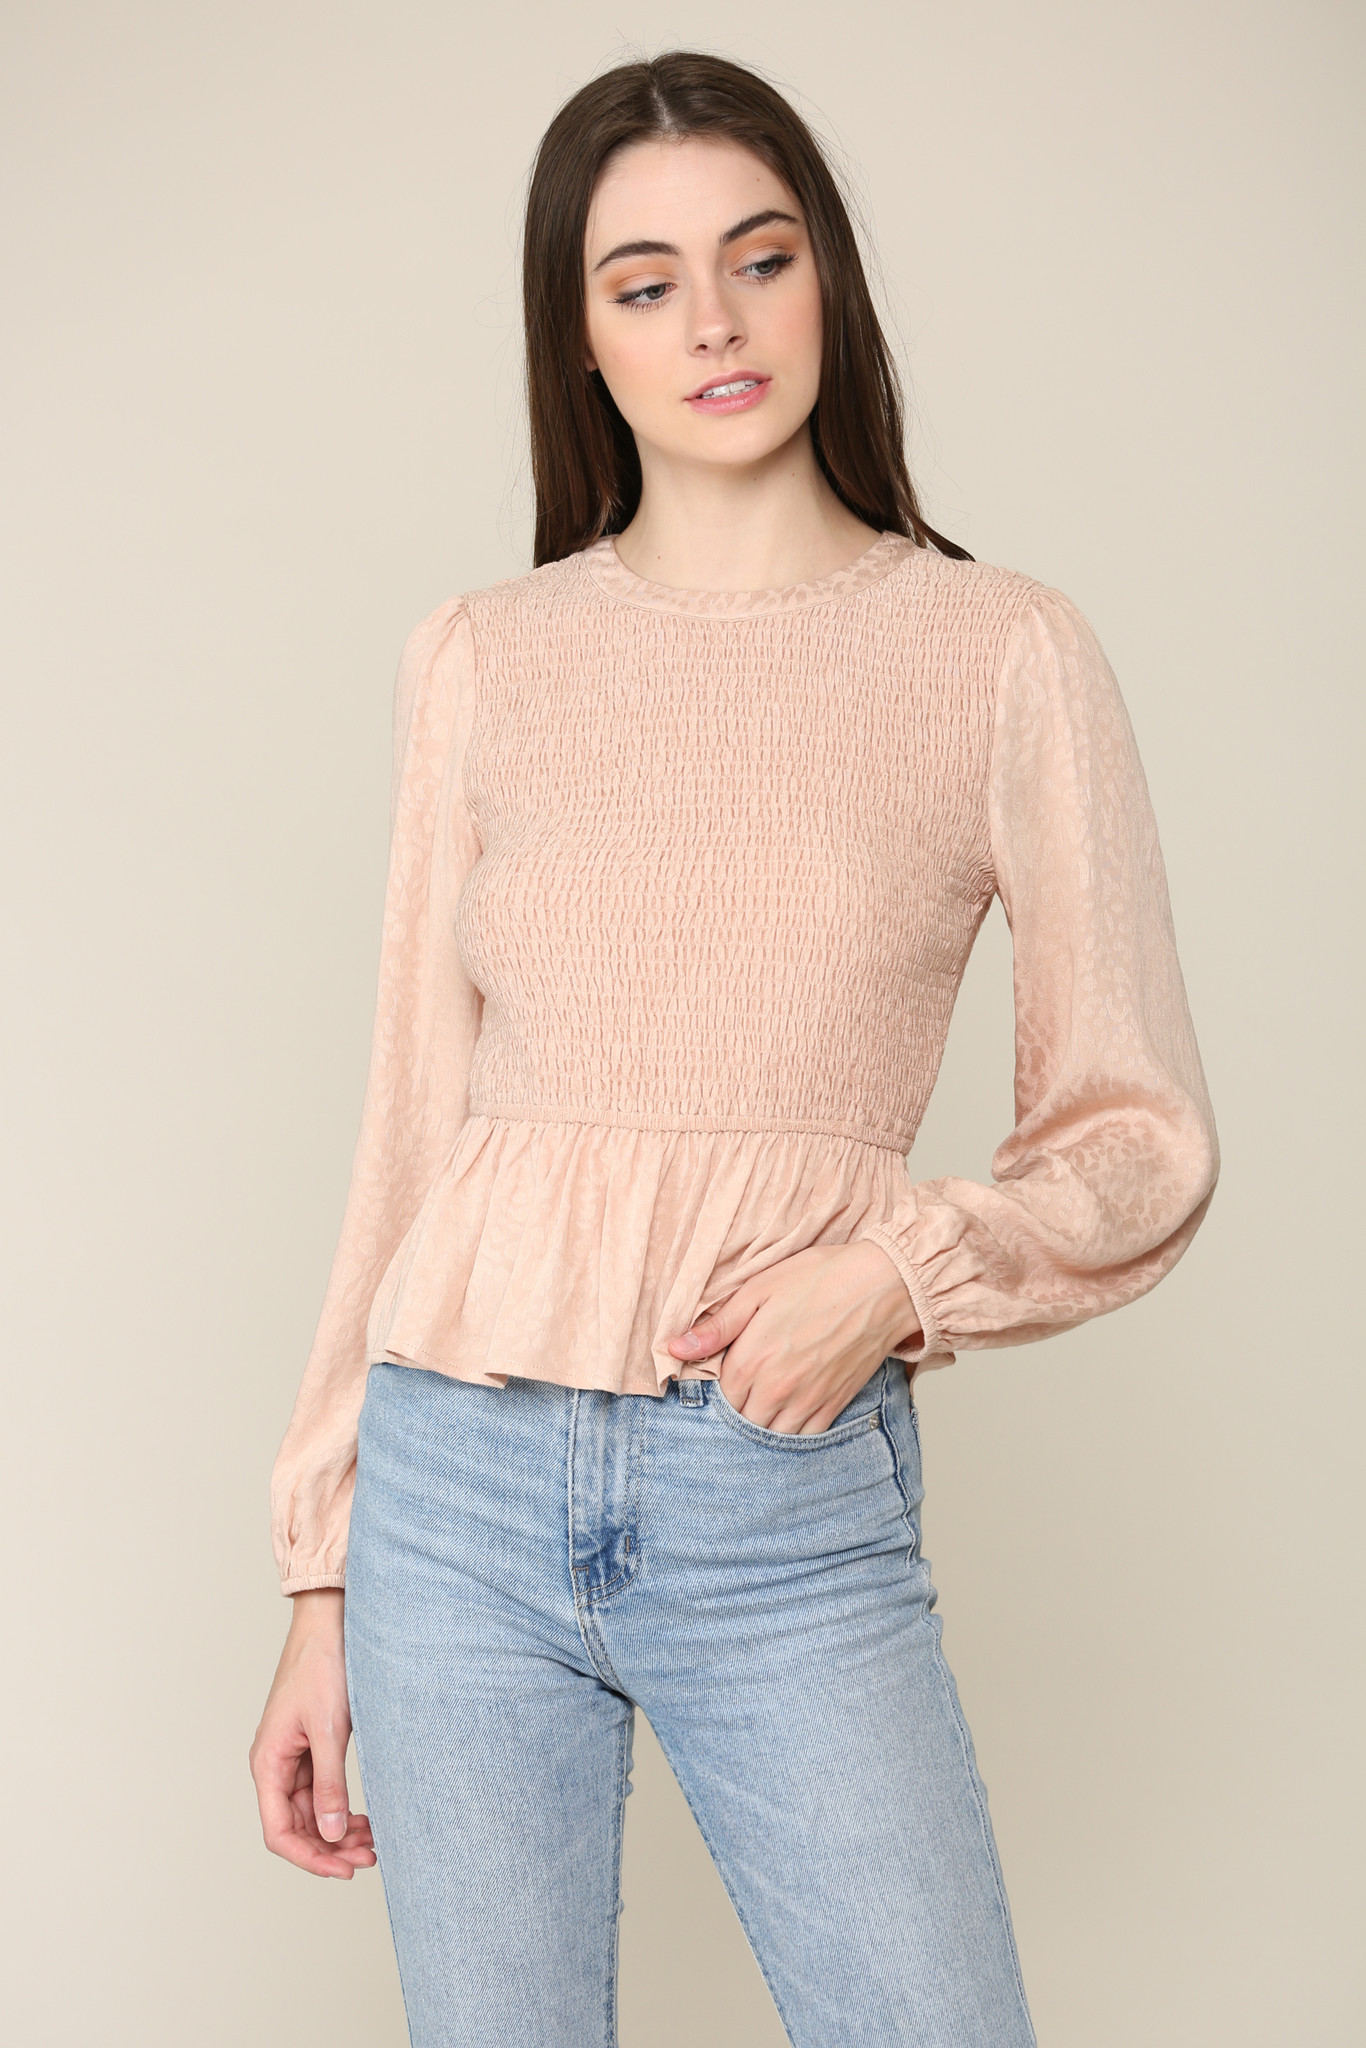 ILLA ILLA Dusty Rose Stretch Top